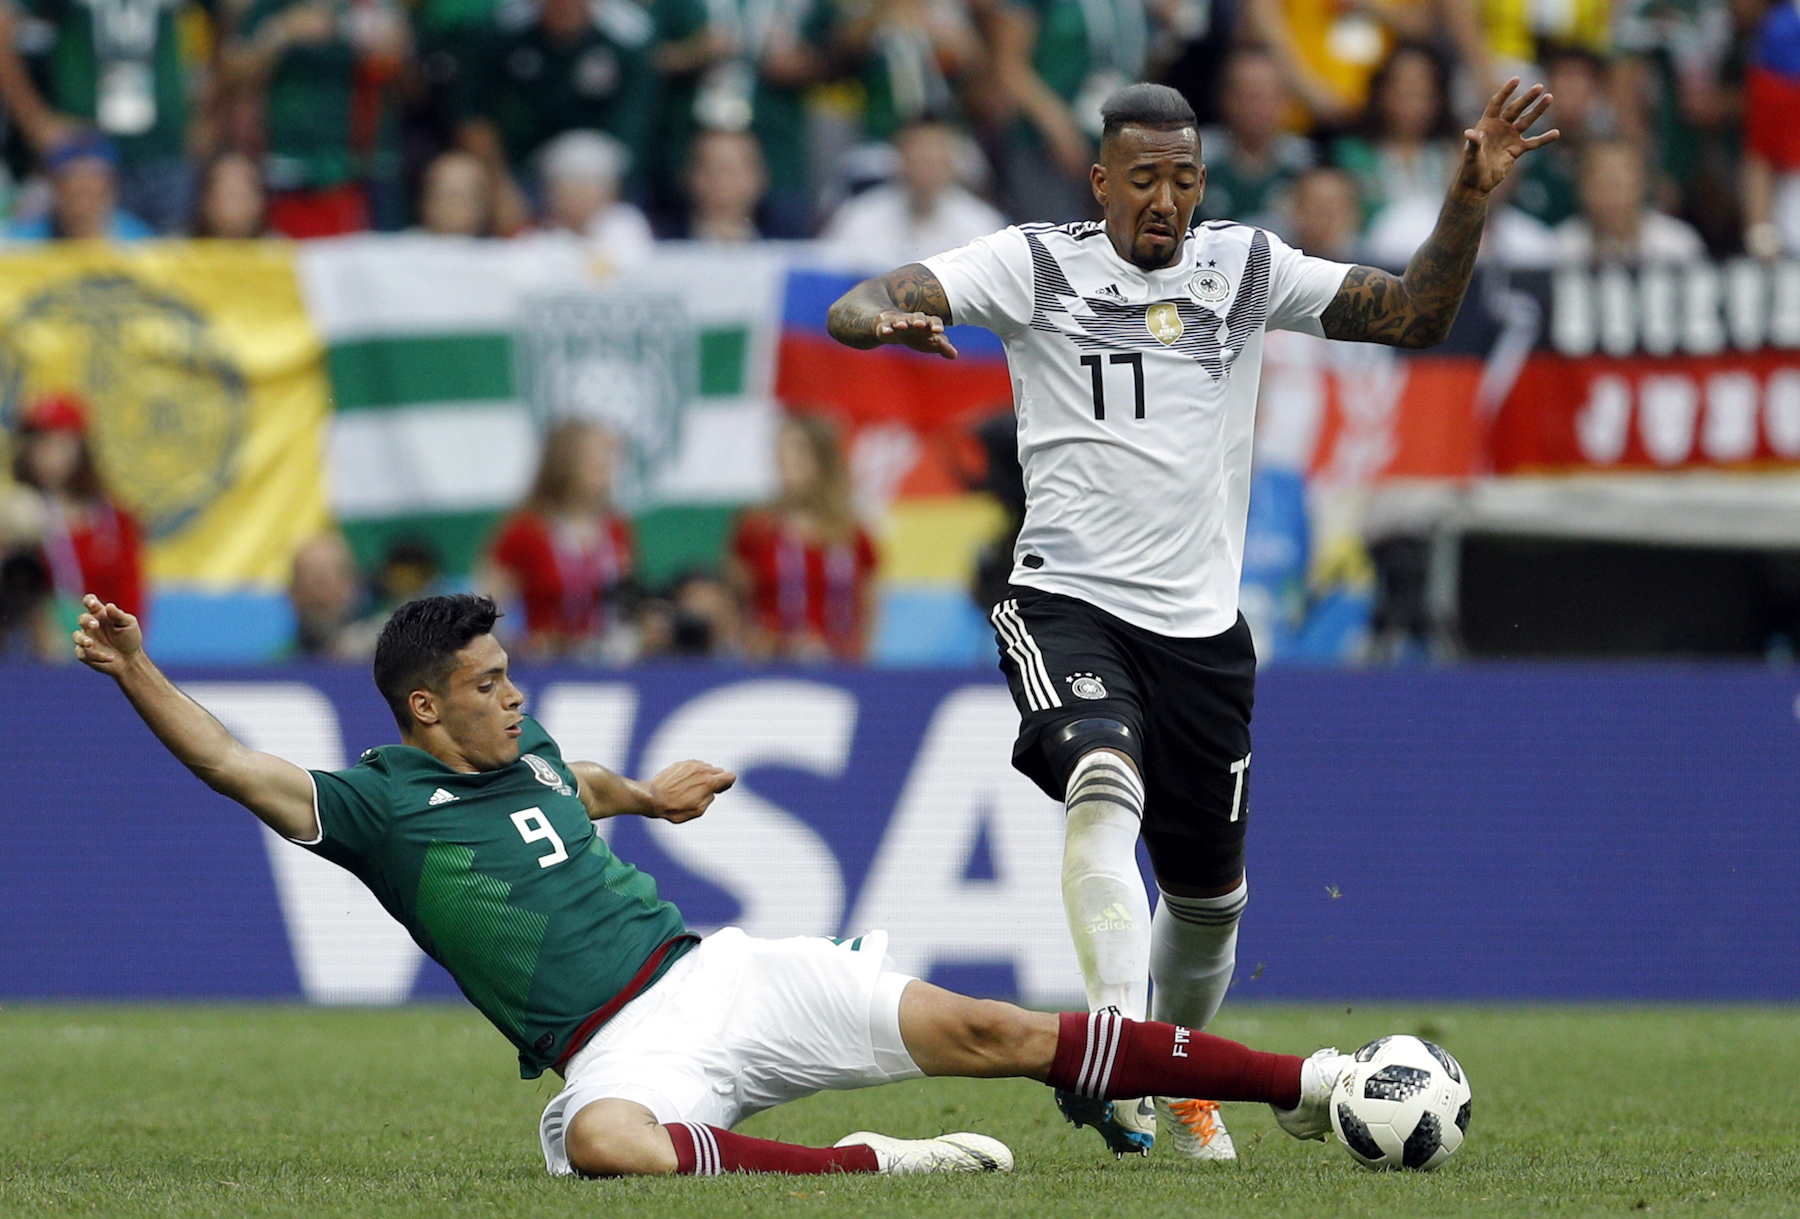 <div class='meta'><div class='origin-logo' data-origin='AP'></div><span class='caption-text' data-credit='AP Photo/Victor R. Caivano'>Mexico's Raul Jimenez, left, tackles Germany's Jerome Boateng during the group F match between Germany and Mexico at the 2018 soccer World Cup in the Luzhniki Stadium.</span></div>